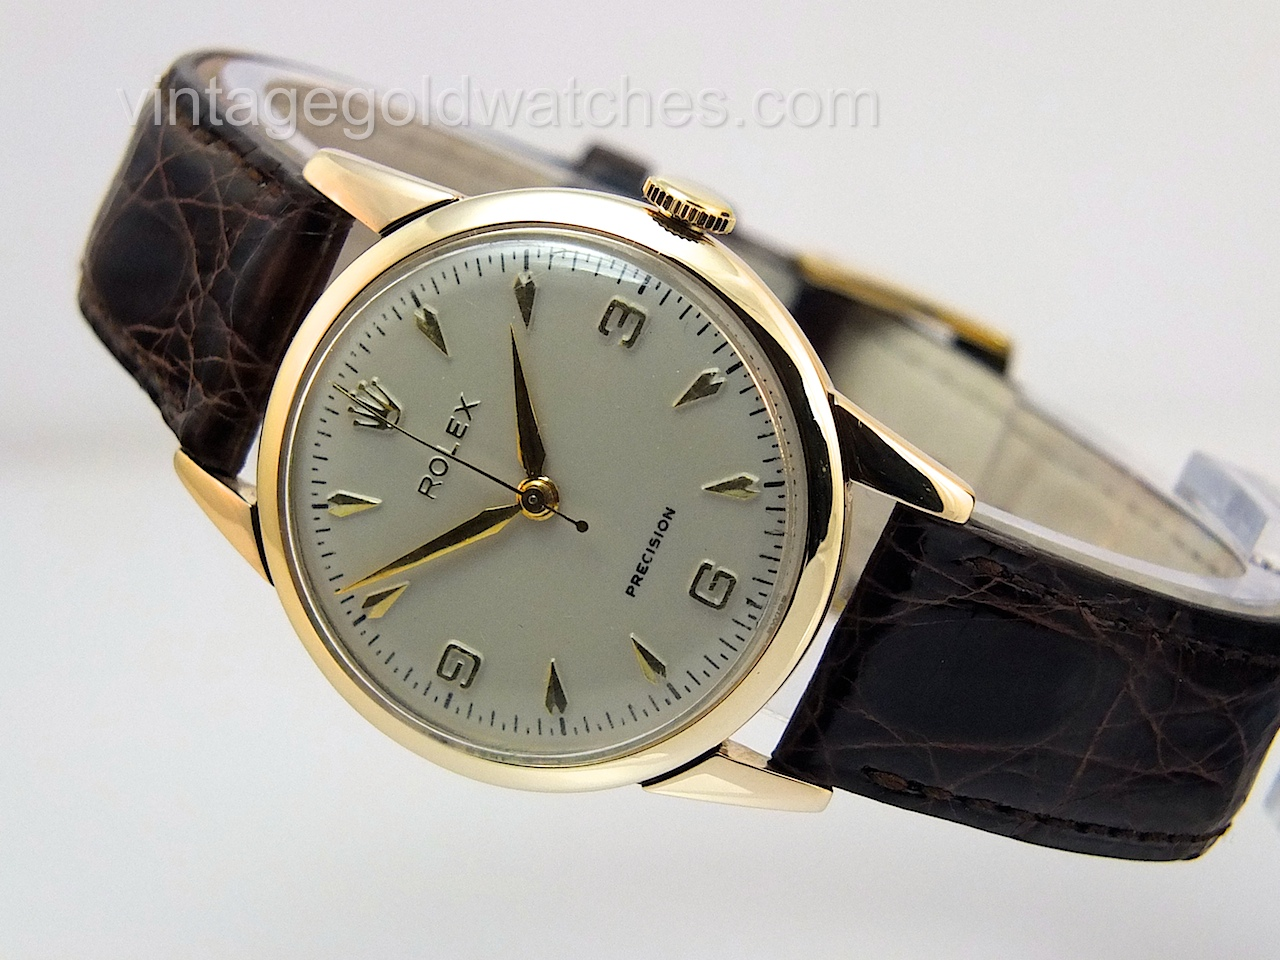 Rolex precision 9k 1959 vintage gold watches for Gold timepieces watch